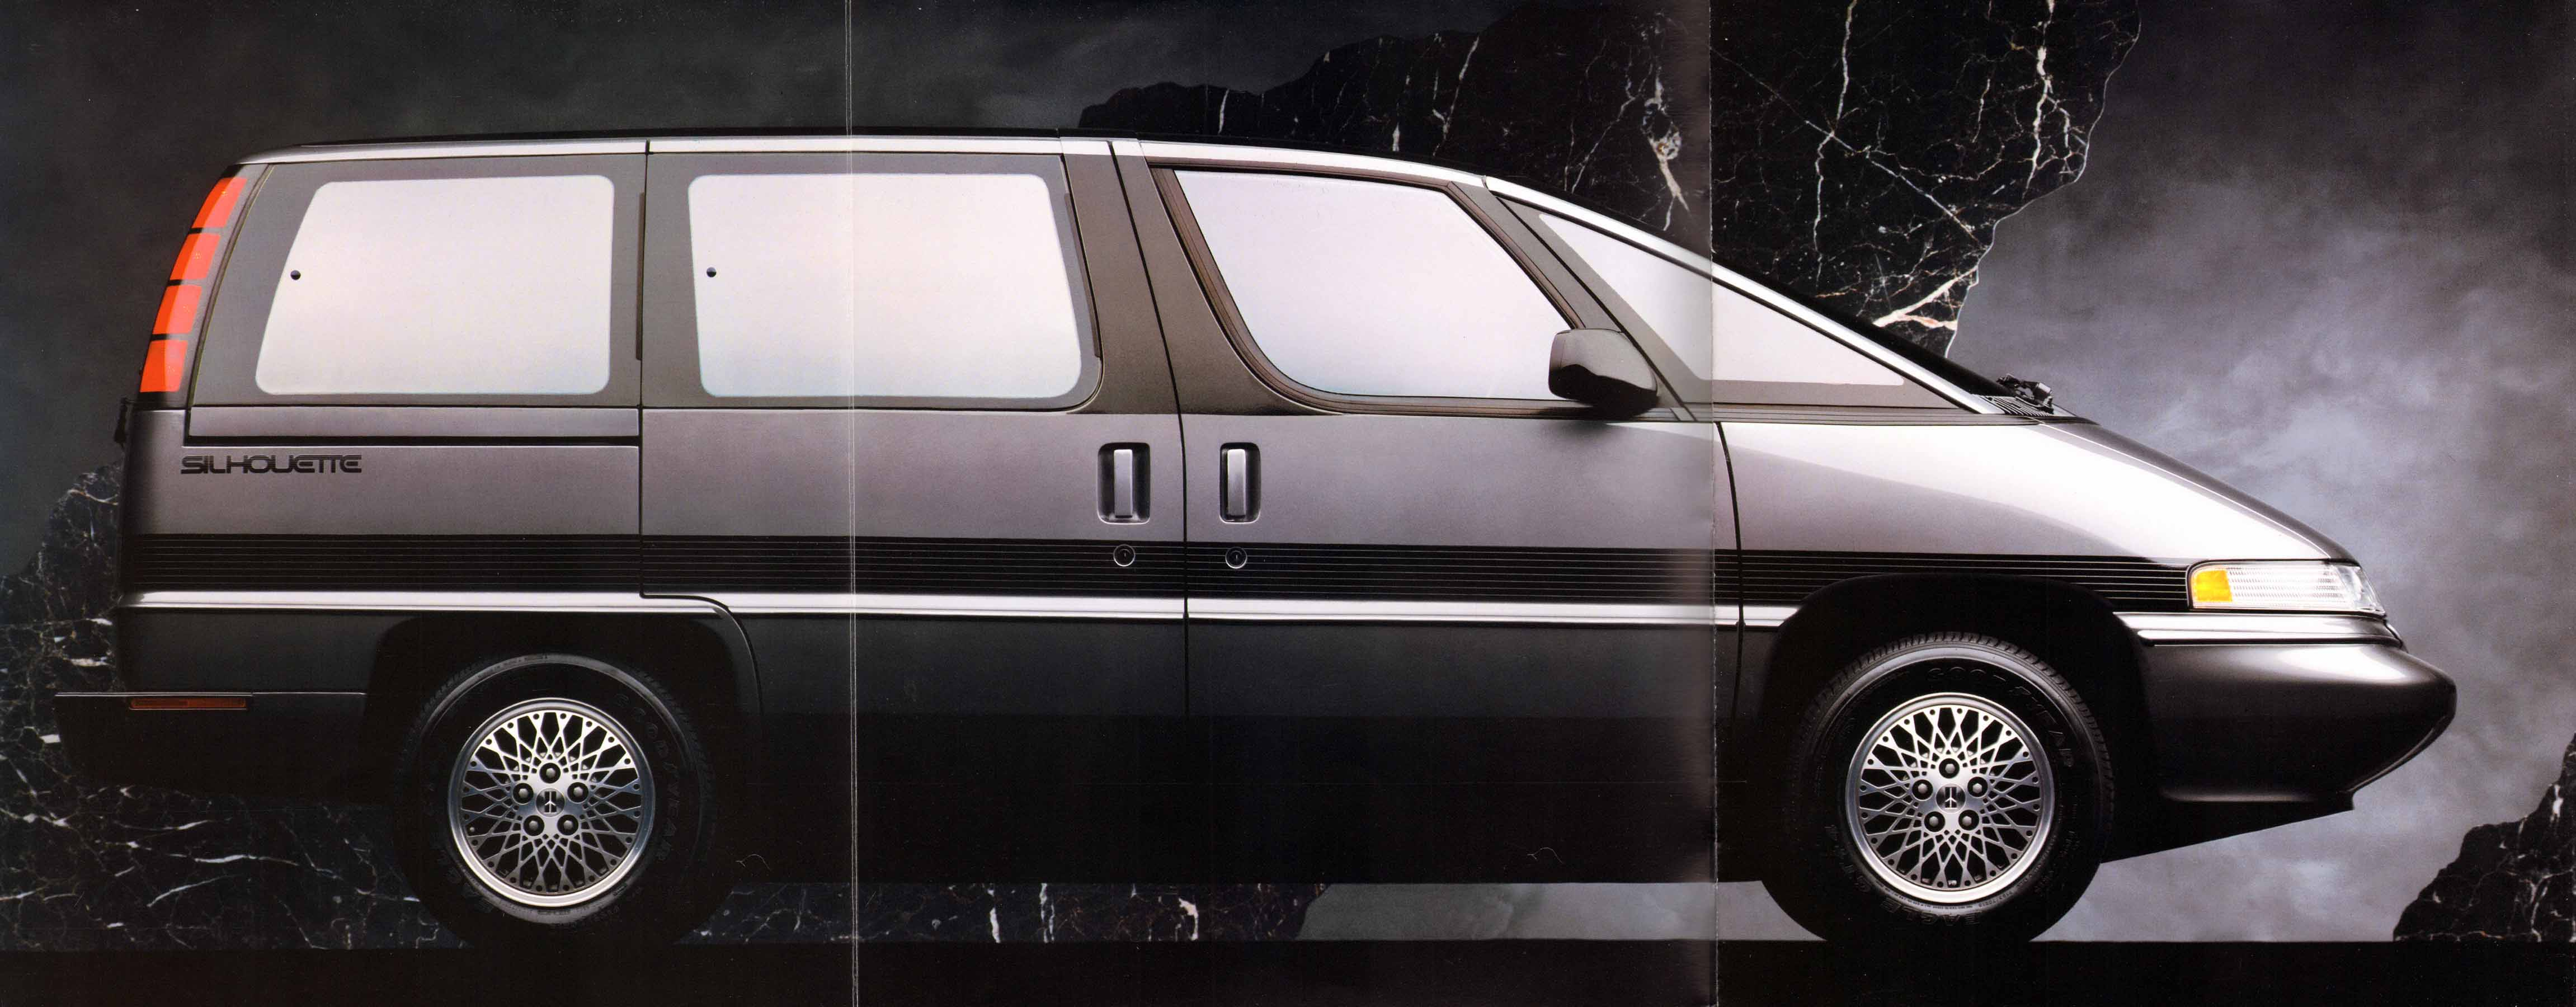 1990 Oldsmobile Silhouette   pictures, information and specs